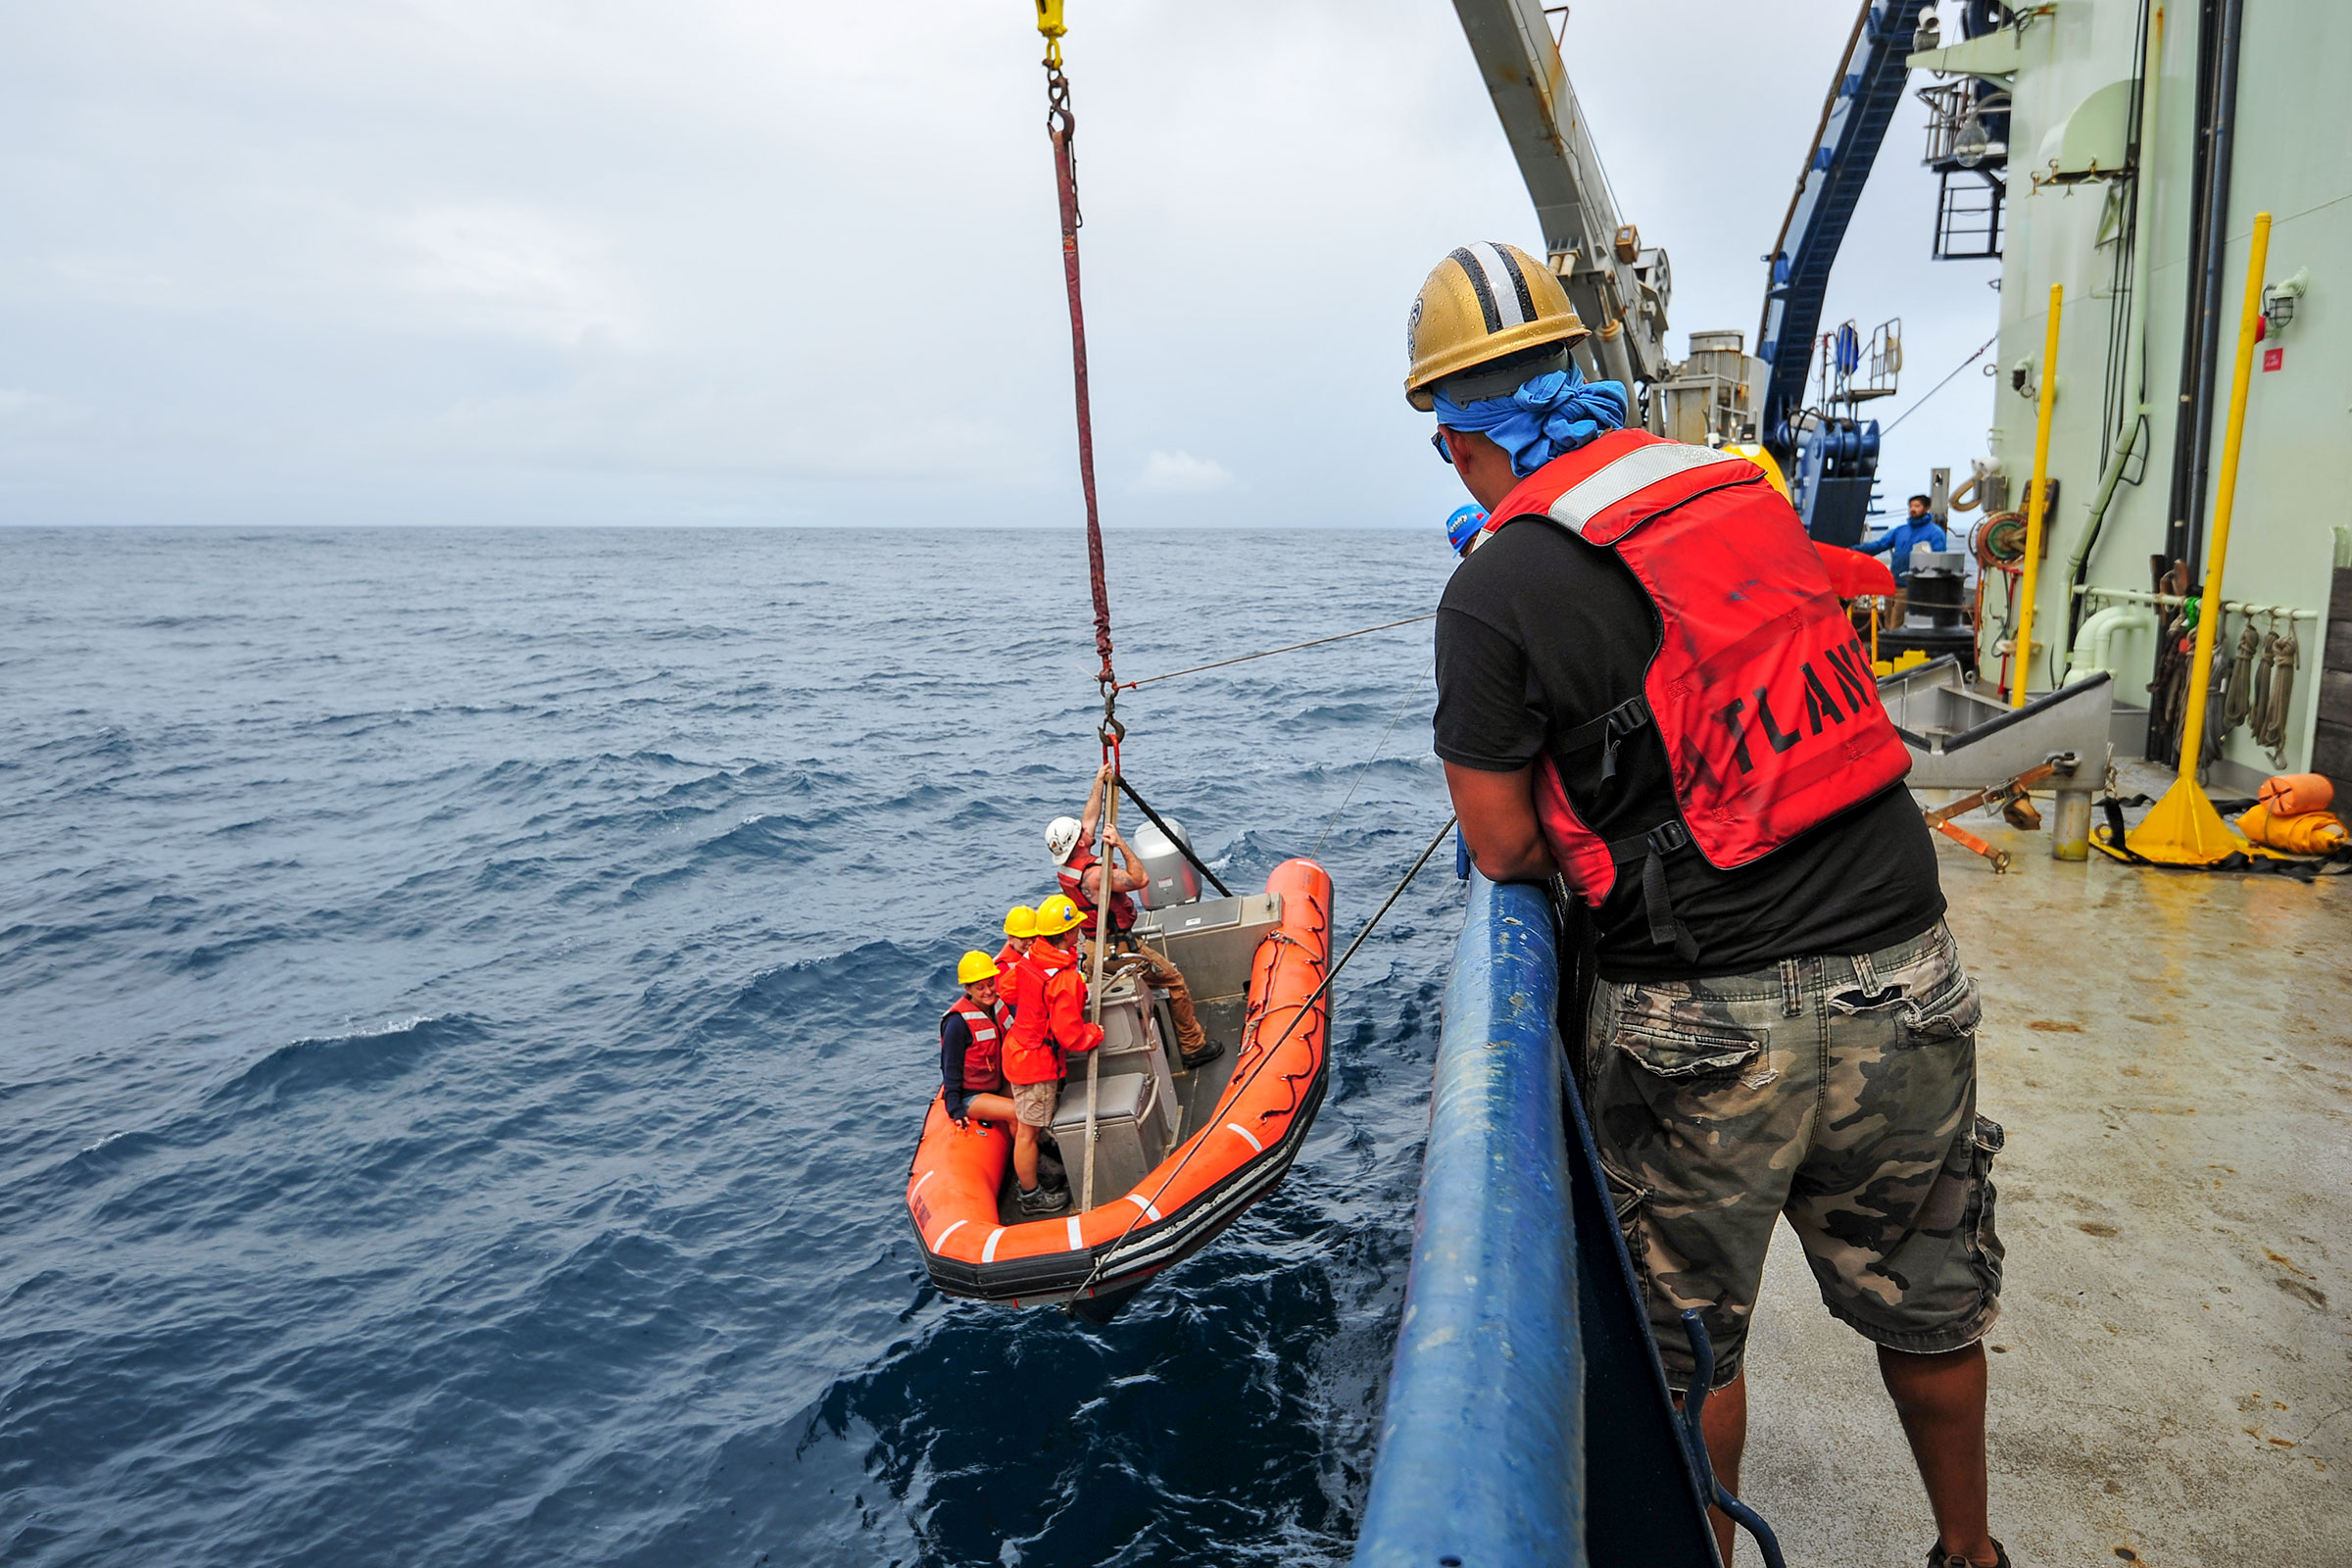 The small boat is lowered over the side of the research vessel to aid in recovery of the human-occupied vehicle Alvin and transfer crew and scientists from shore. Shana Goffredi